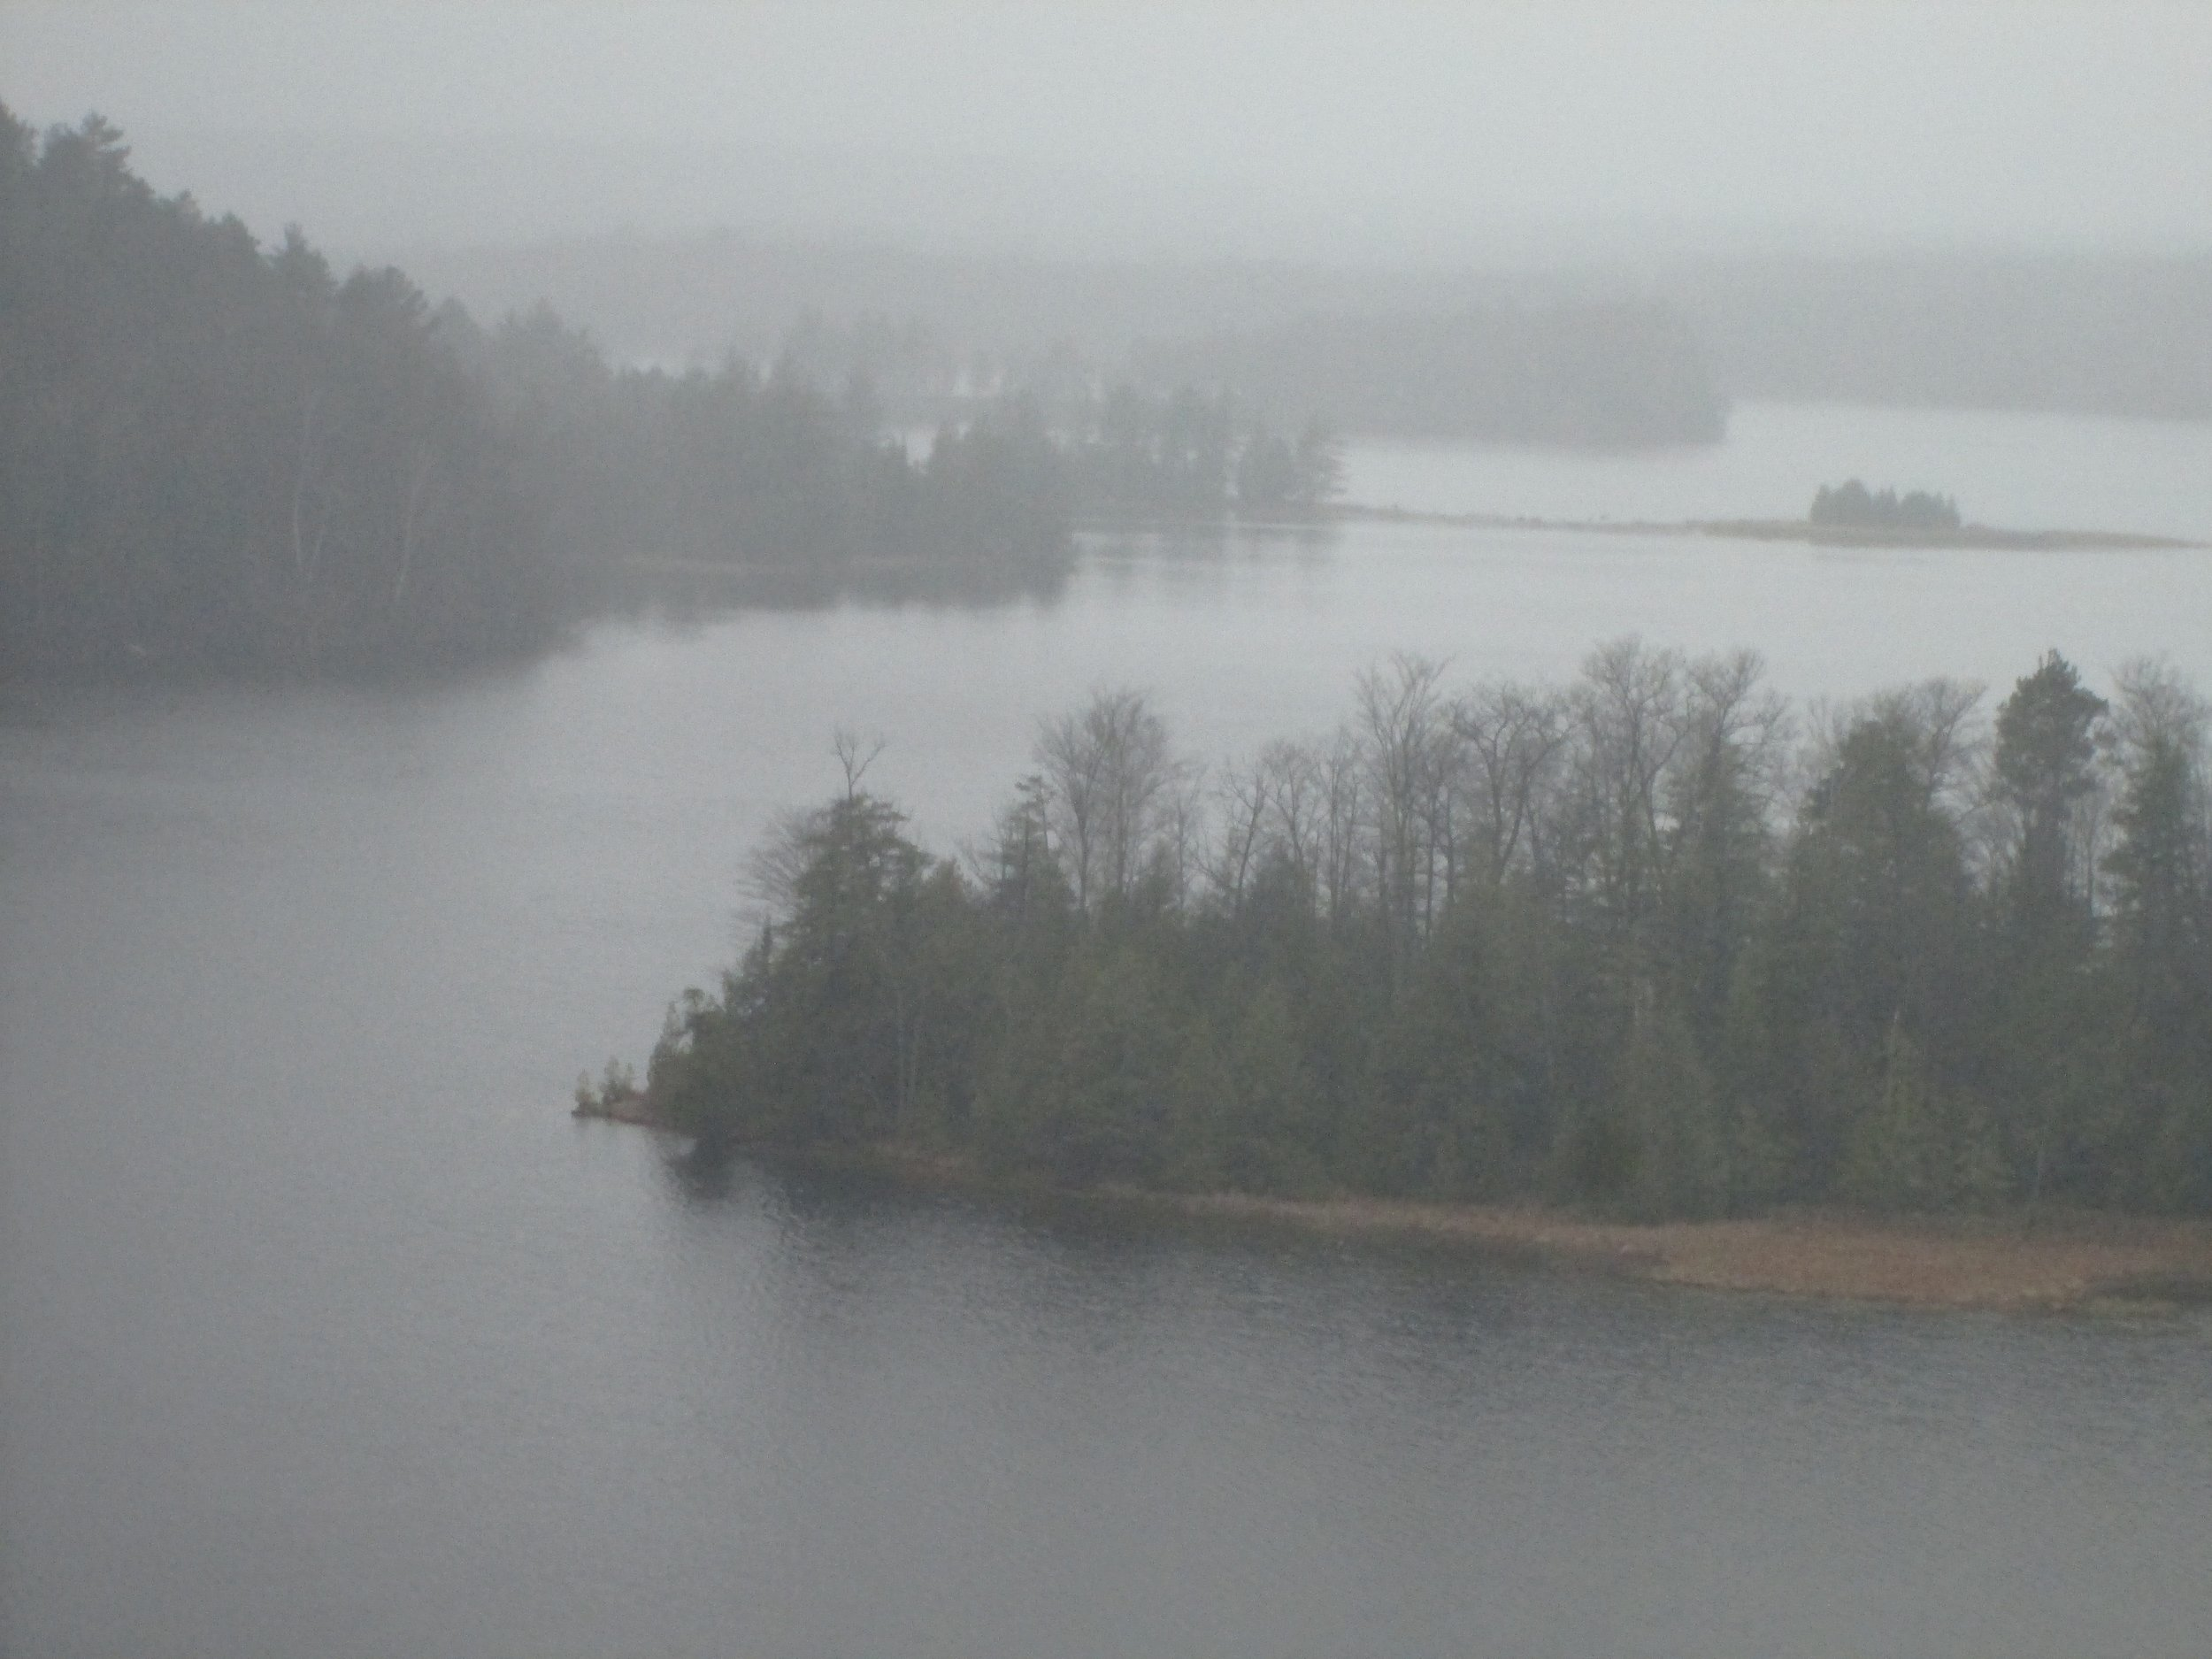 View at Lumberman's Monument in OScoda on an overcast day